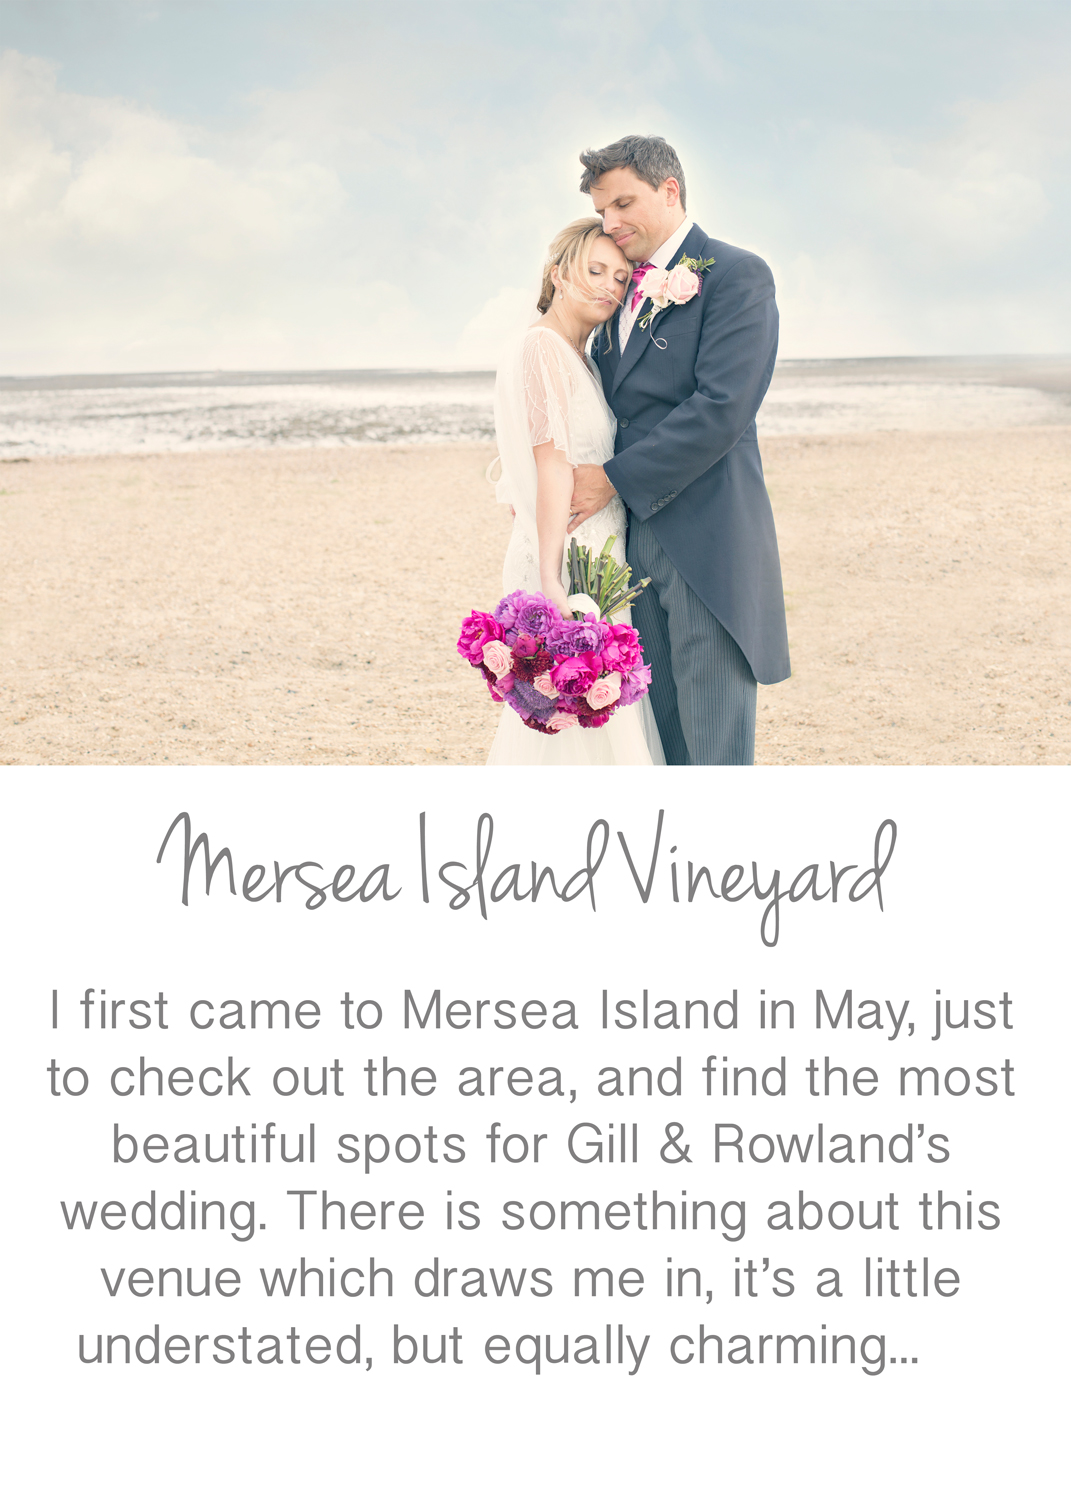 mersea-island-vineyard-sw.jpg